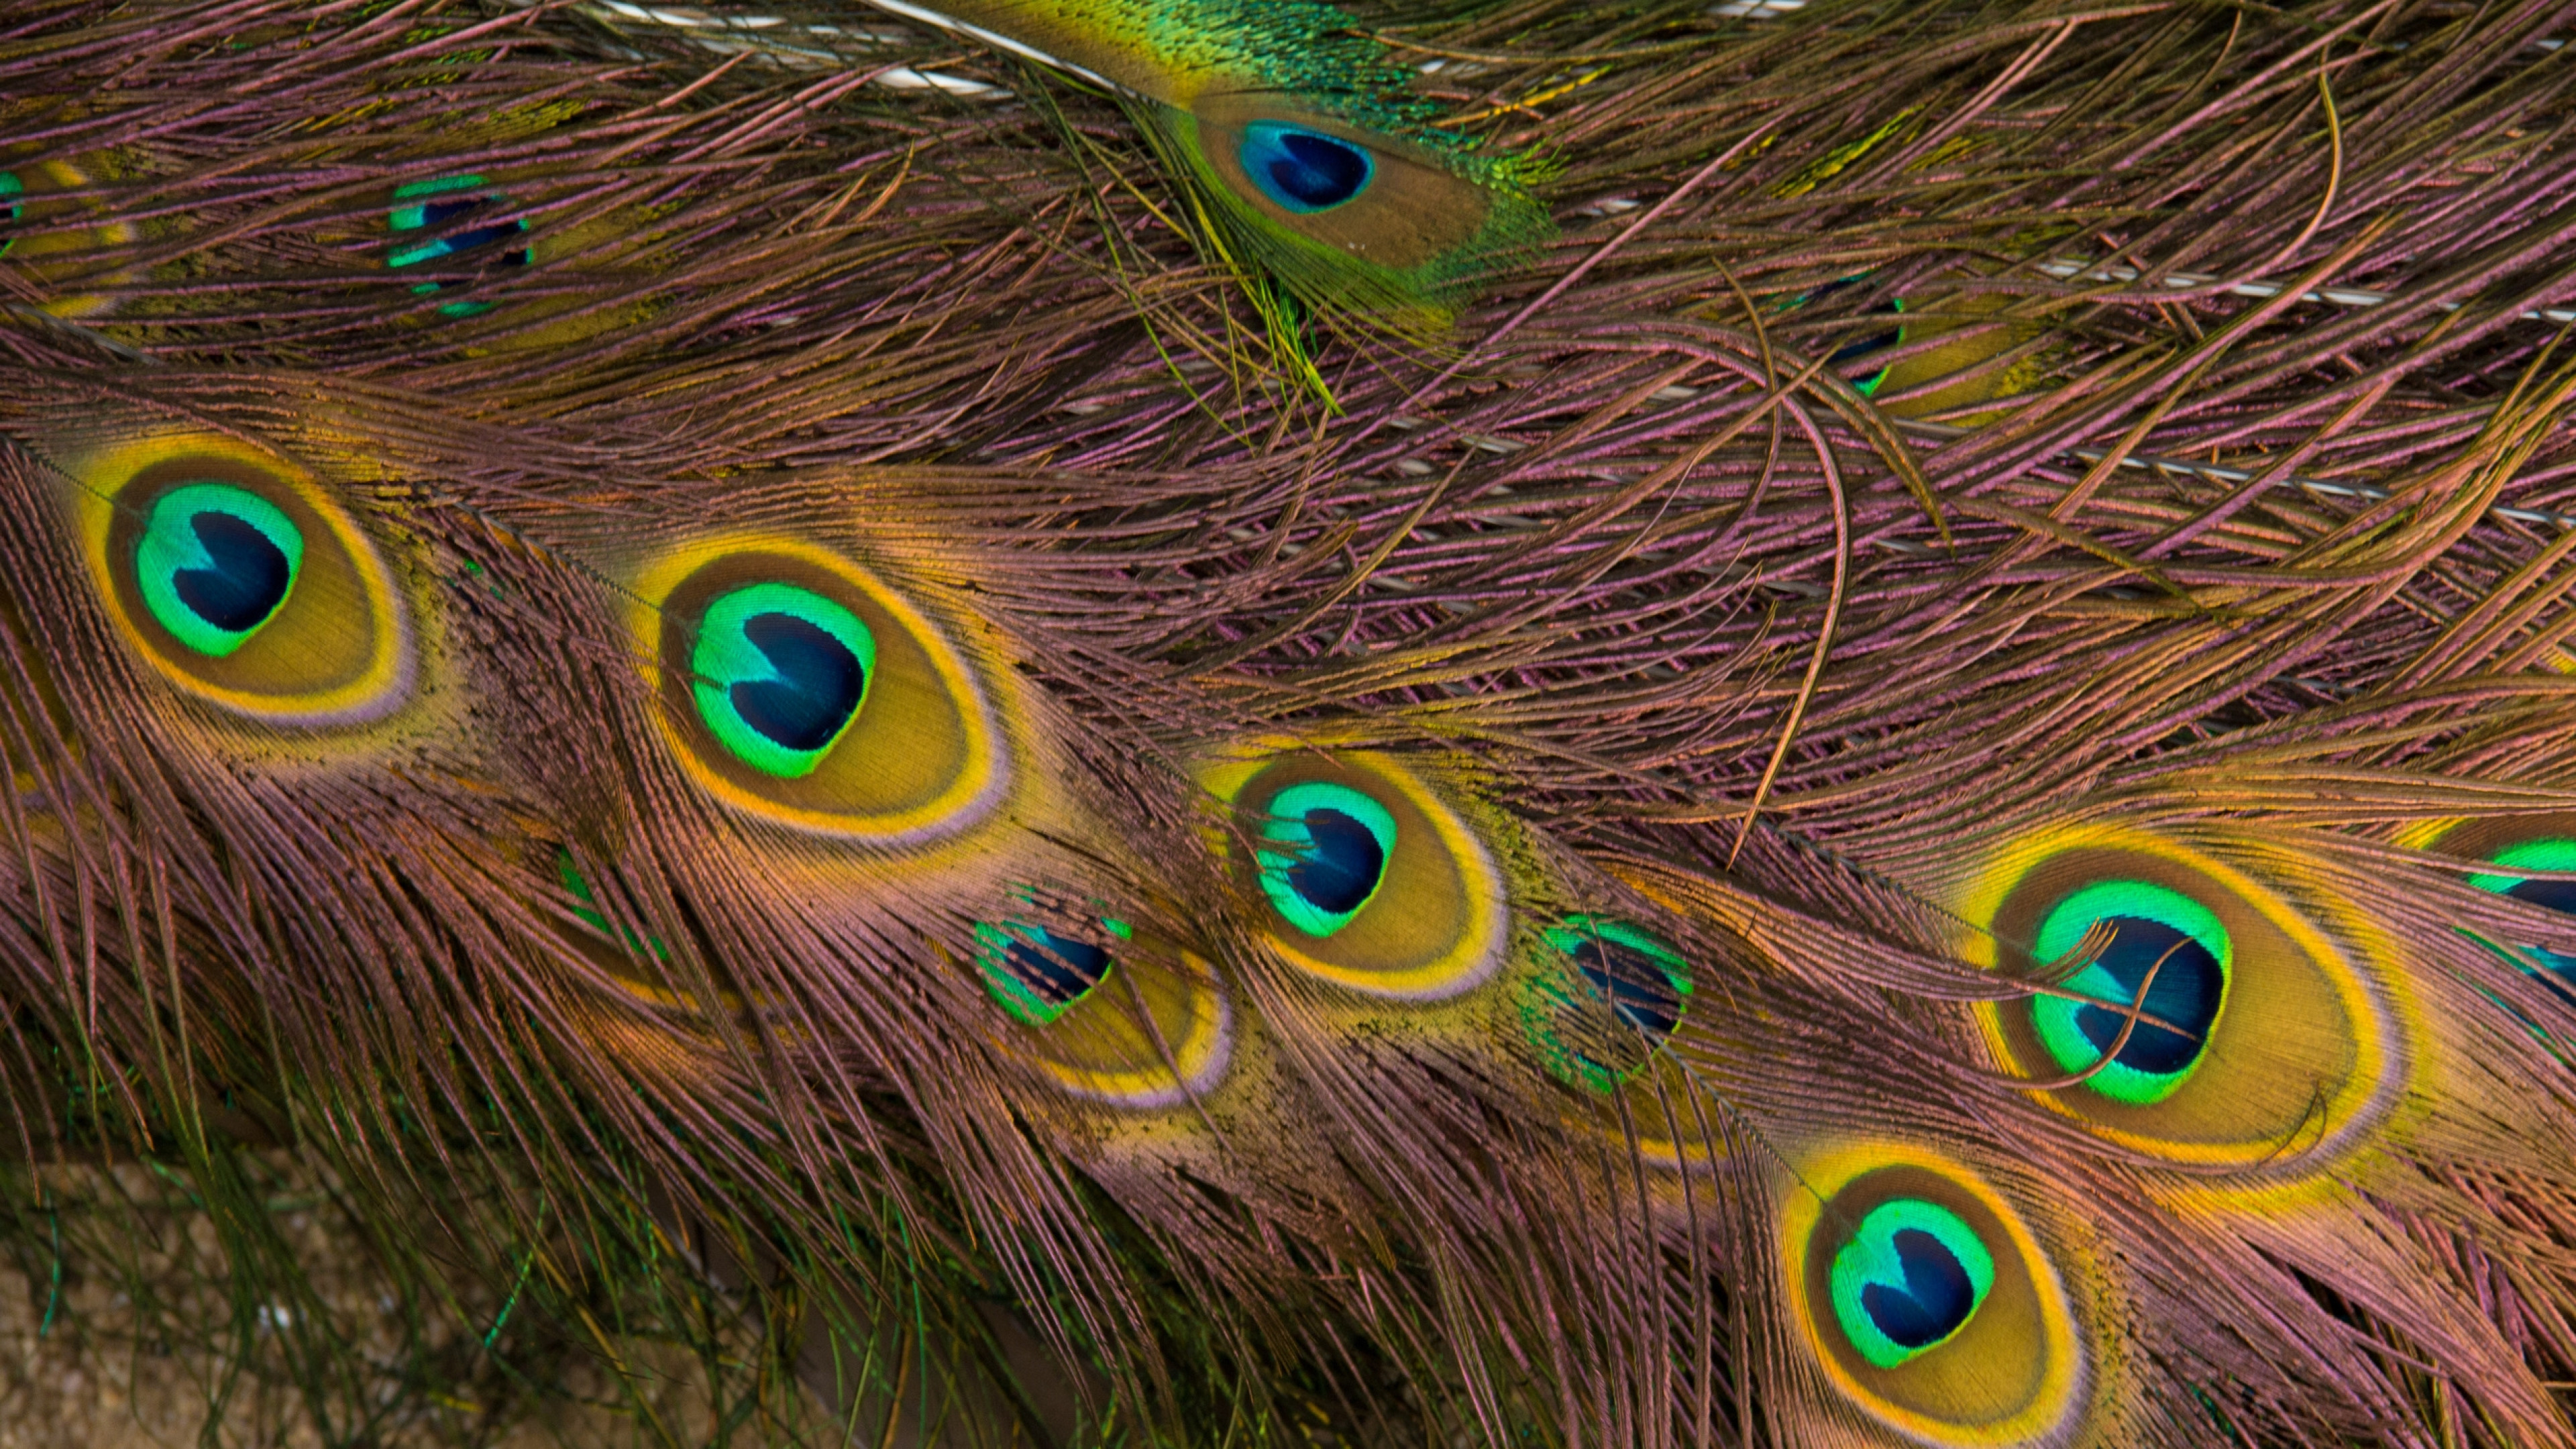 3840x2160  Wallpaper feathers, peacock, texture, background, pattern